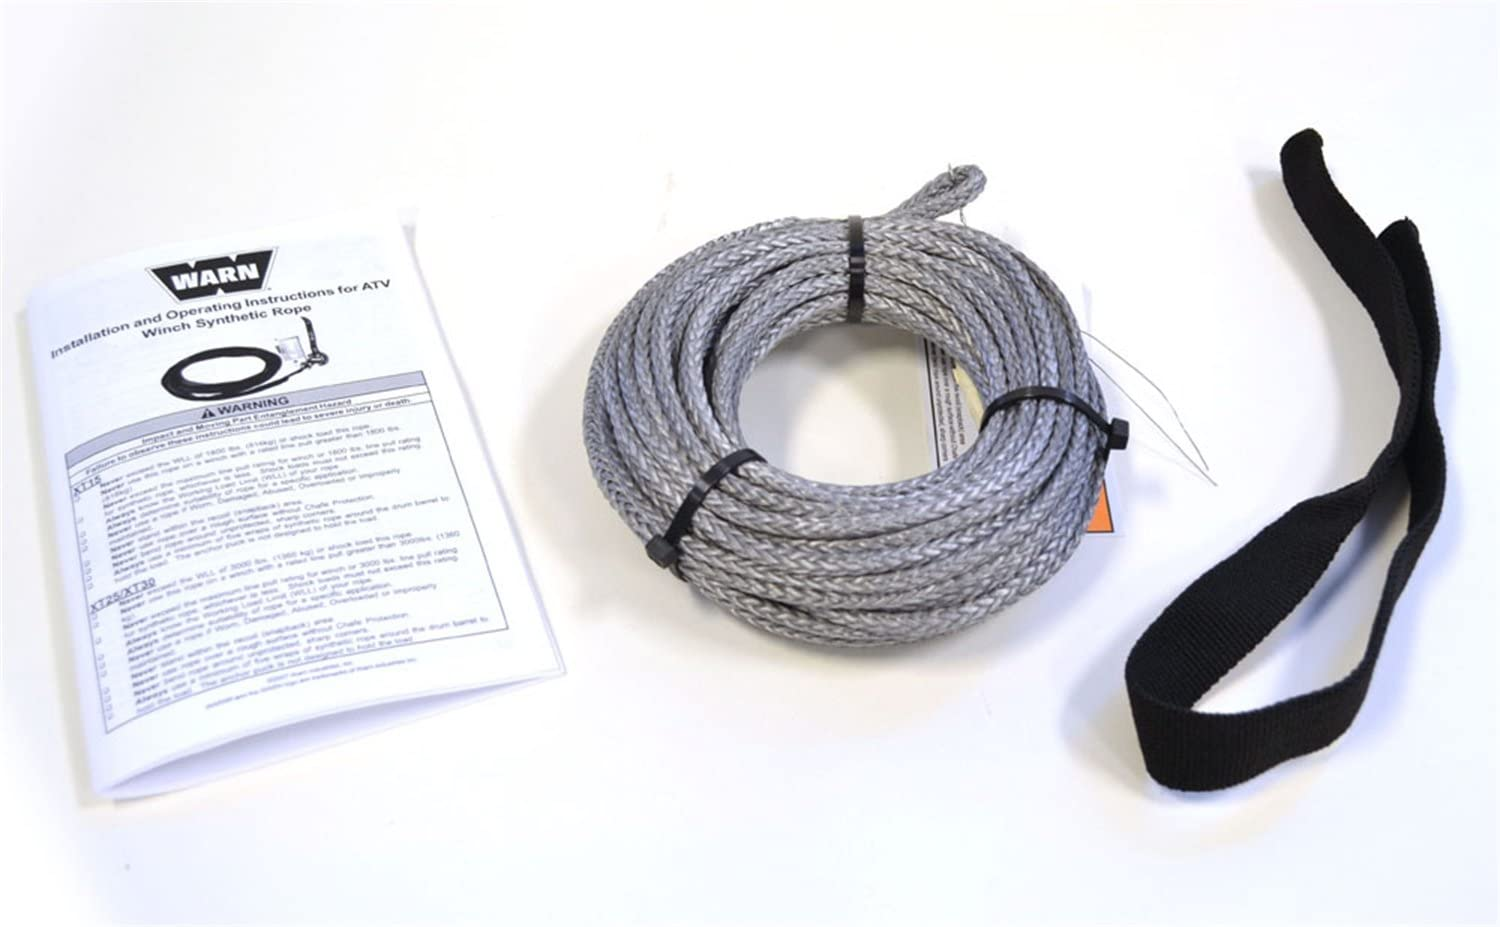 73599 Warn Winch Synthetic Rope ONLY